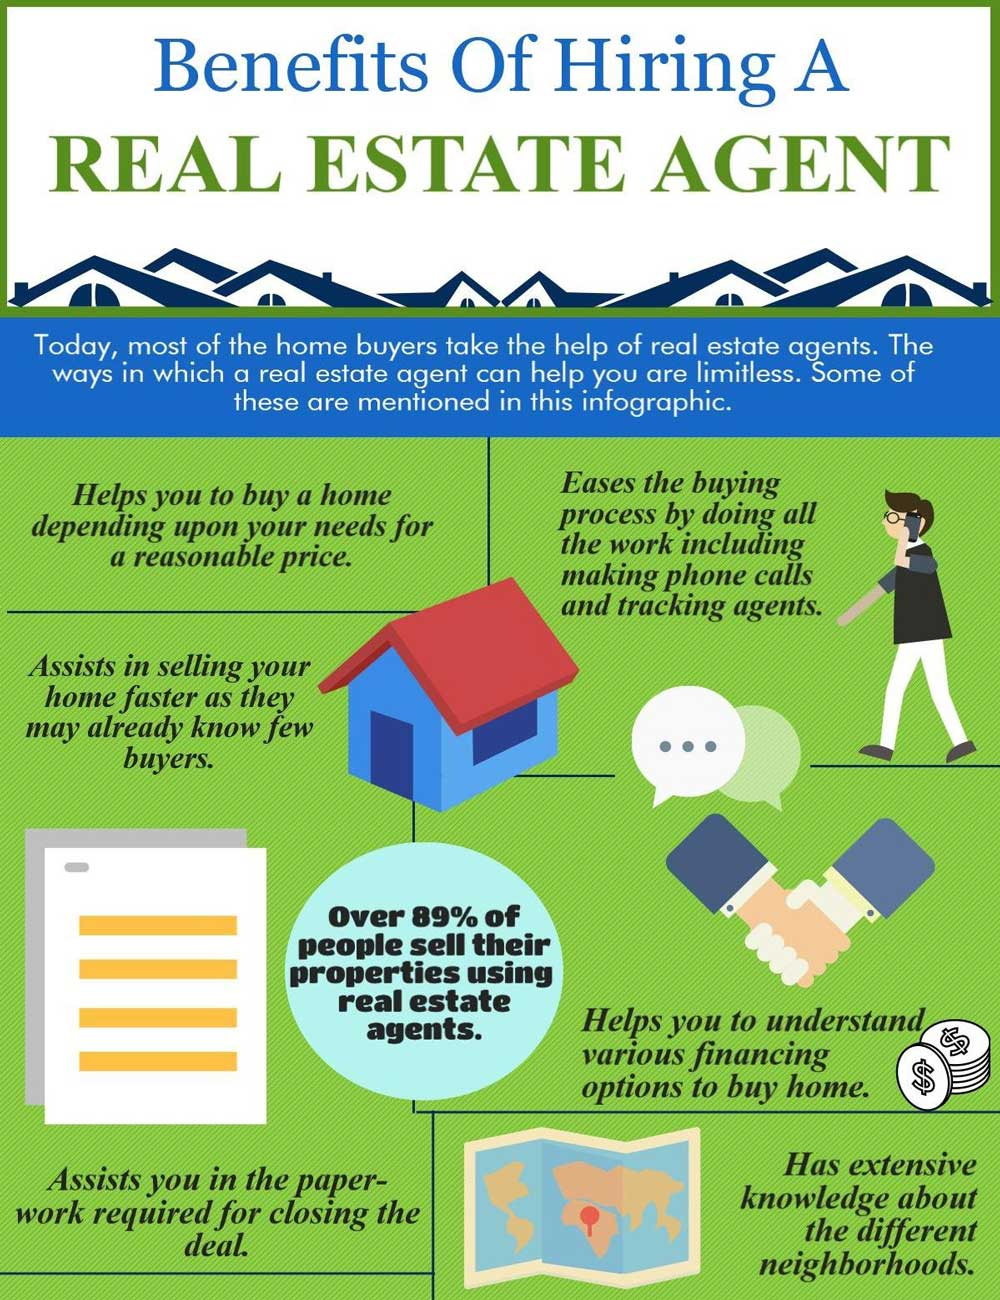 Benefits-Of-Hiring-An-Agent-In-Real-Estate